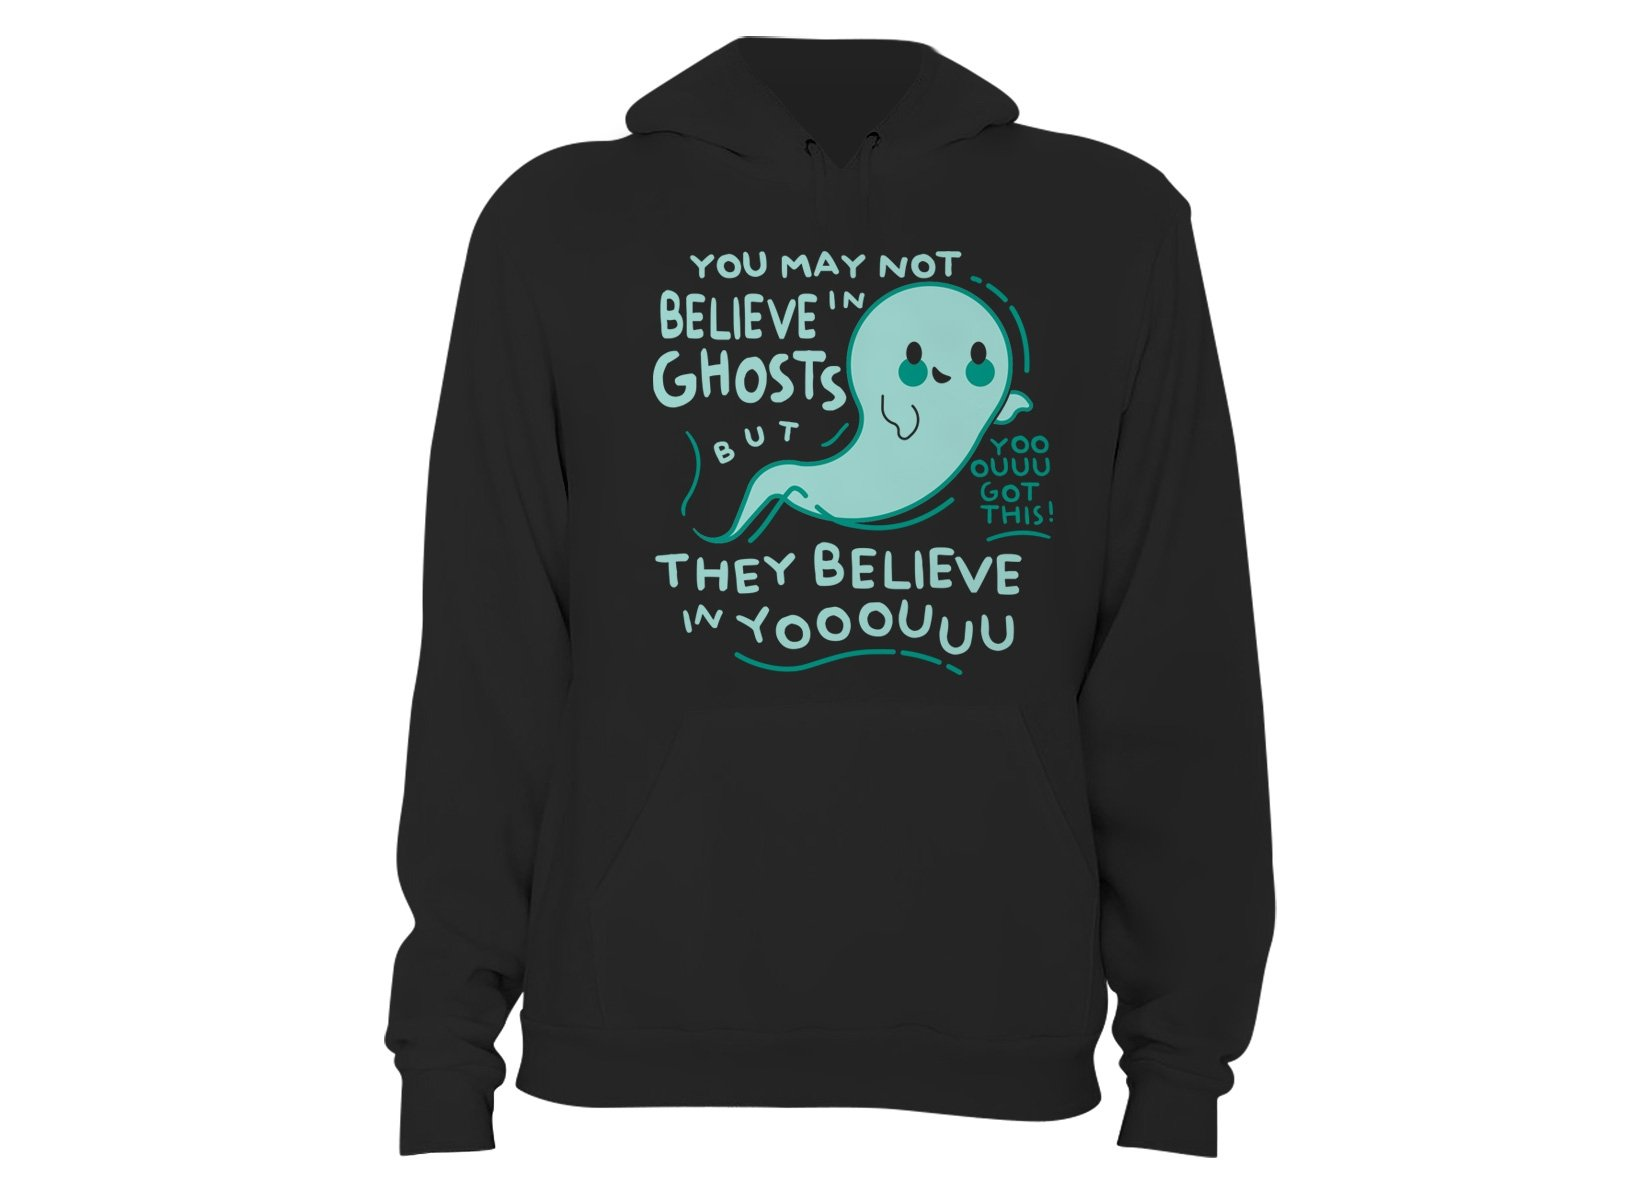 You May Not Believe In Ghosts on Hoodie